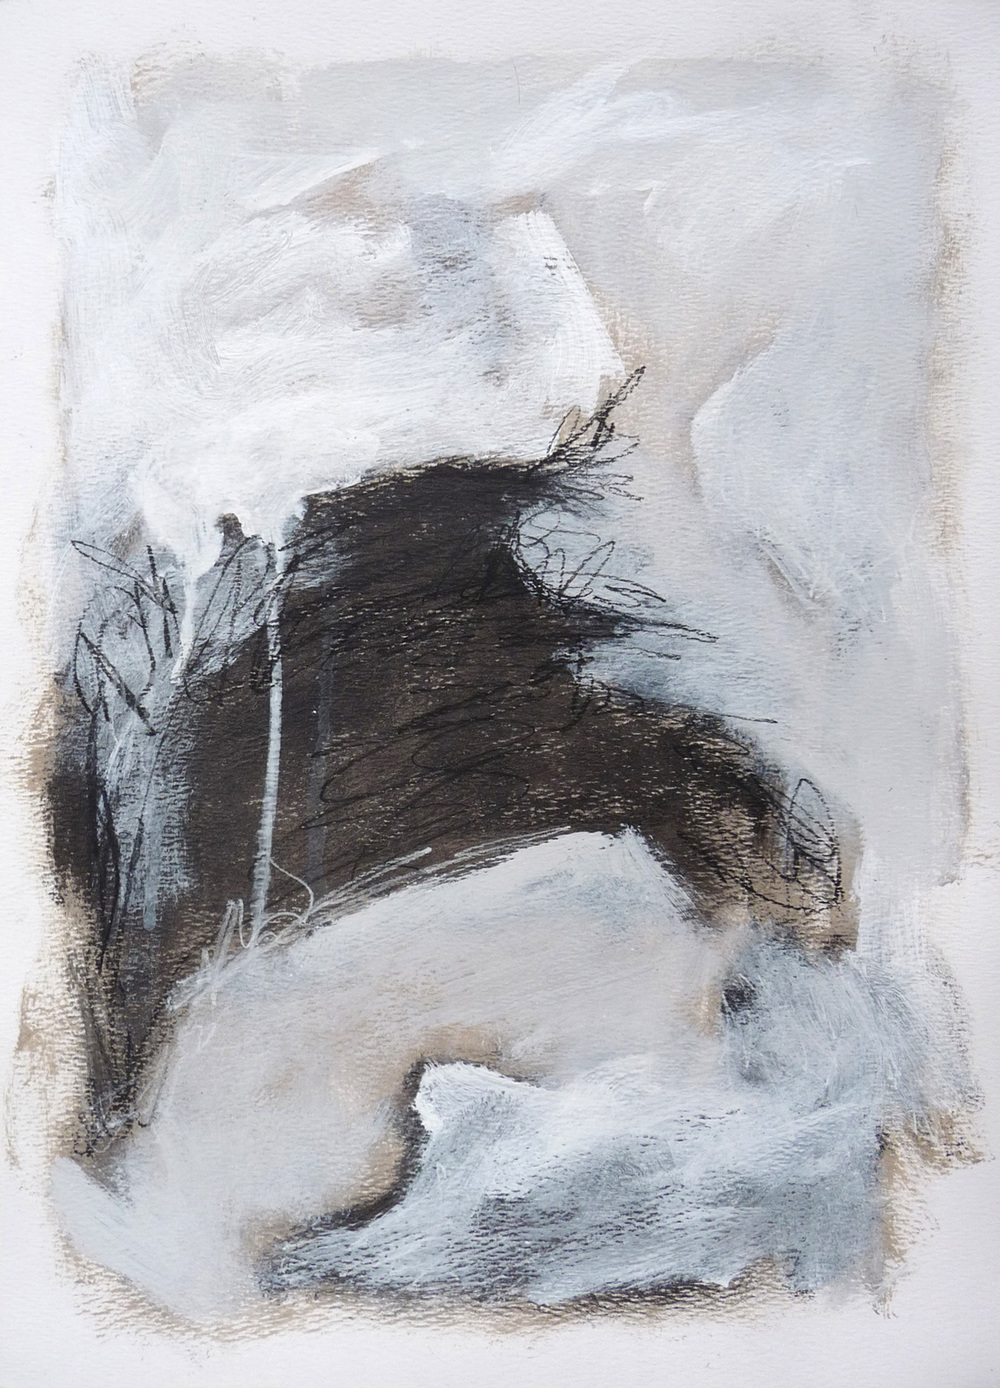 View from Kunstnerhuset II    ,   2016. Acrylic and charcoal on paper. 15 x 11 inches (38.1 x 27.9 cm)